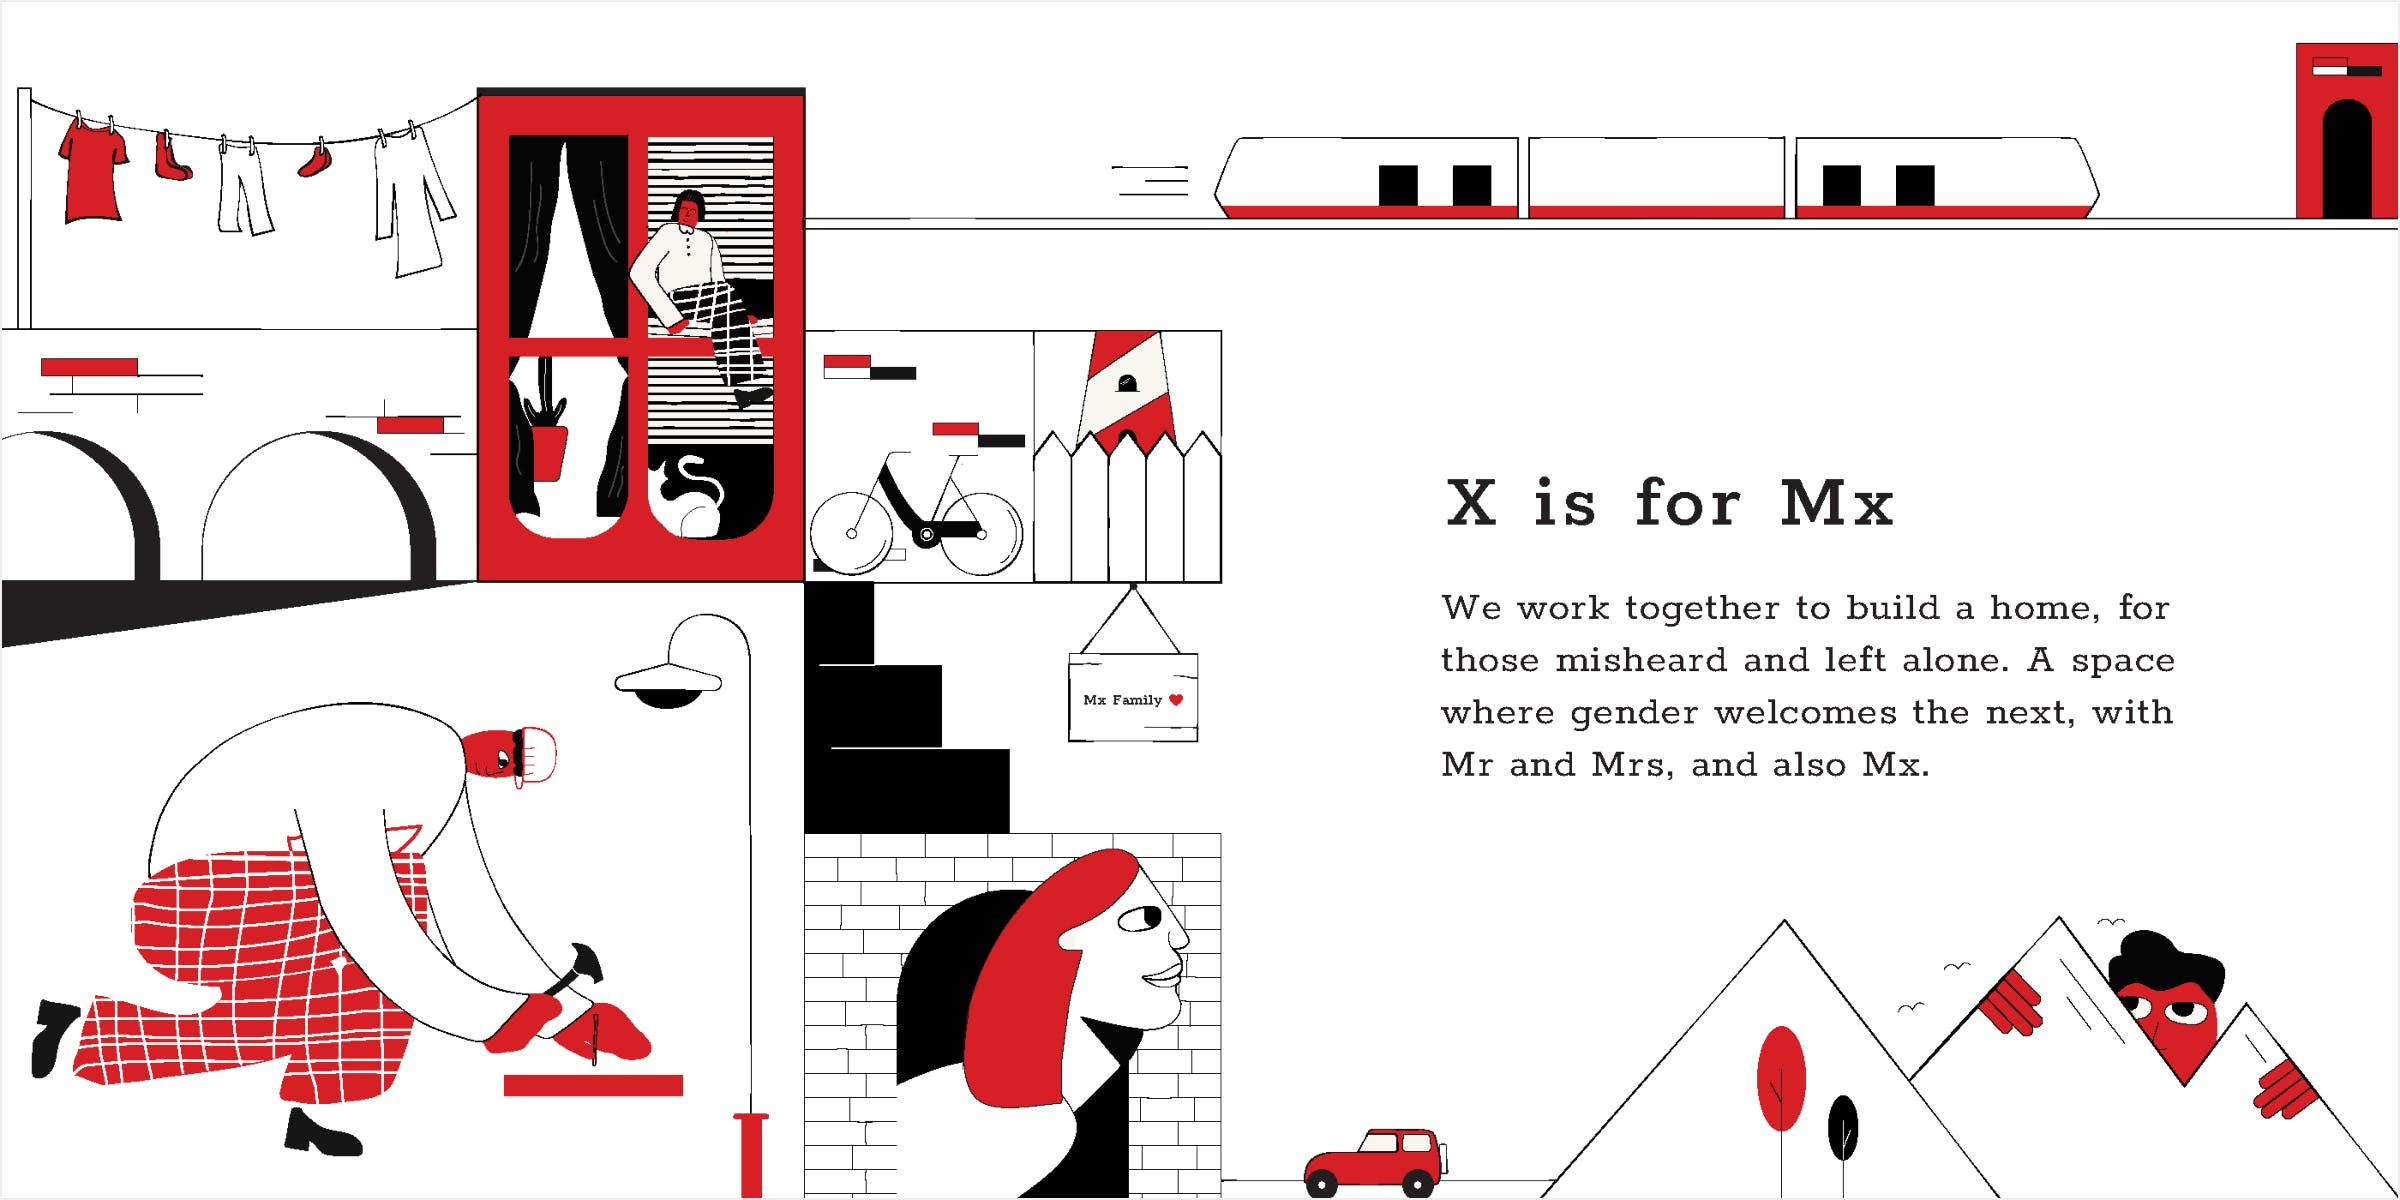 Composition of the Mx spread made in Illustrator. People work together to build a space and home that welcomes everyone.